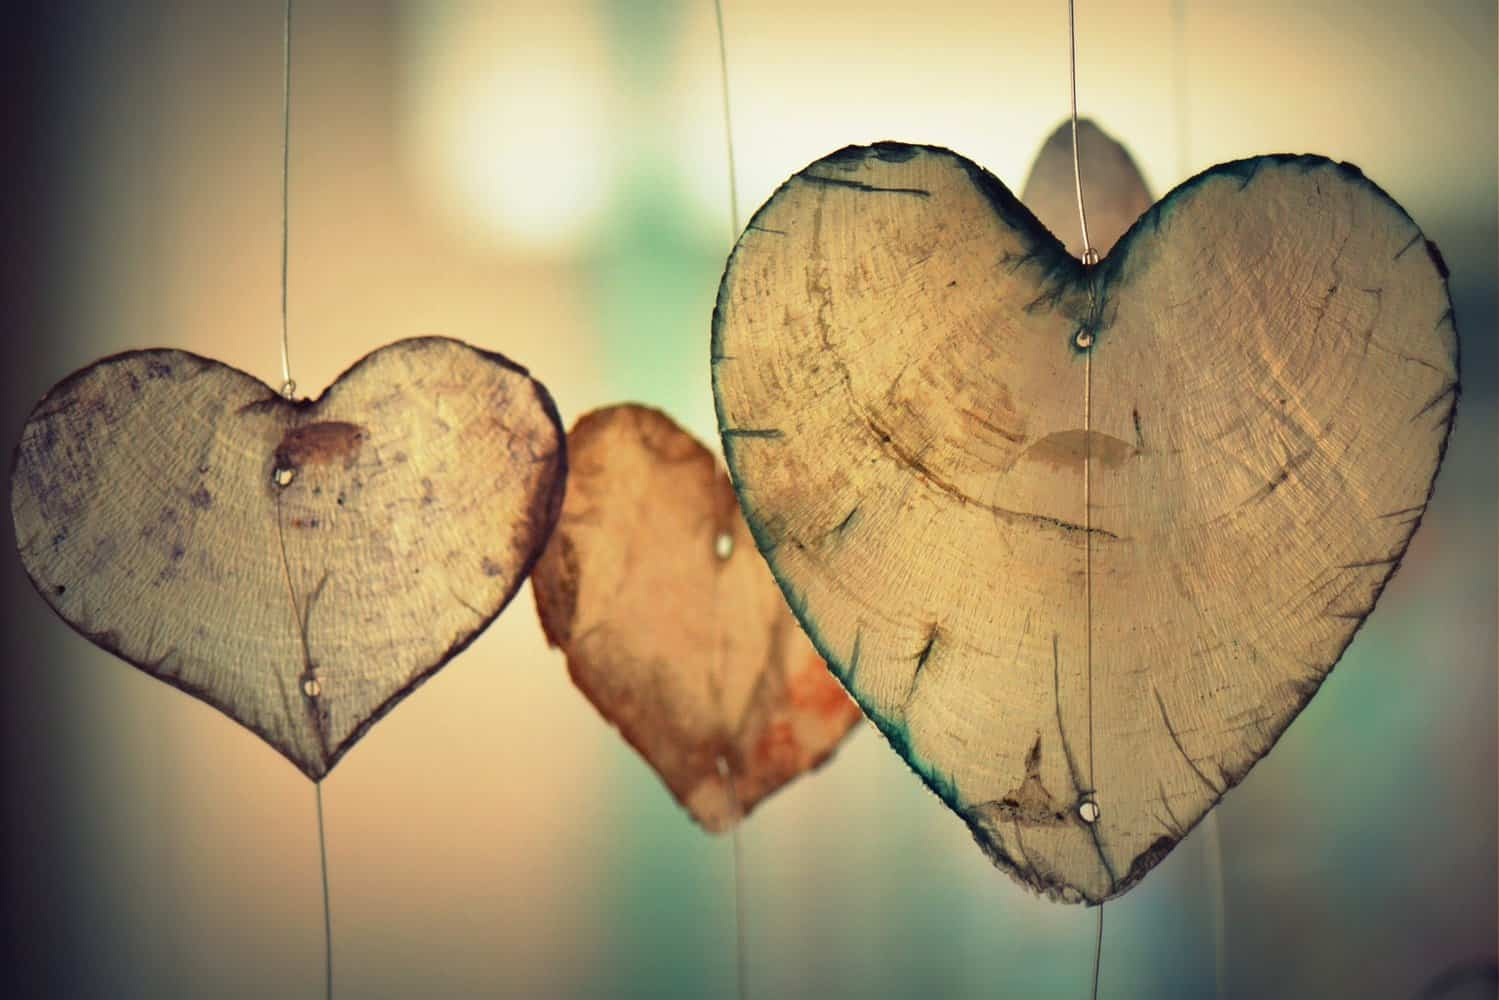 Heart-shaped decorations.